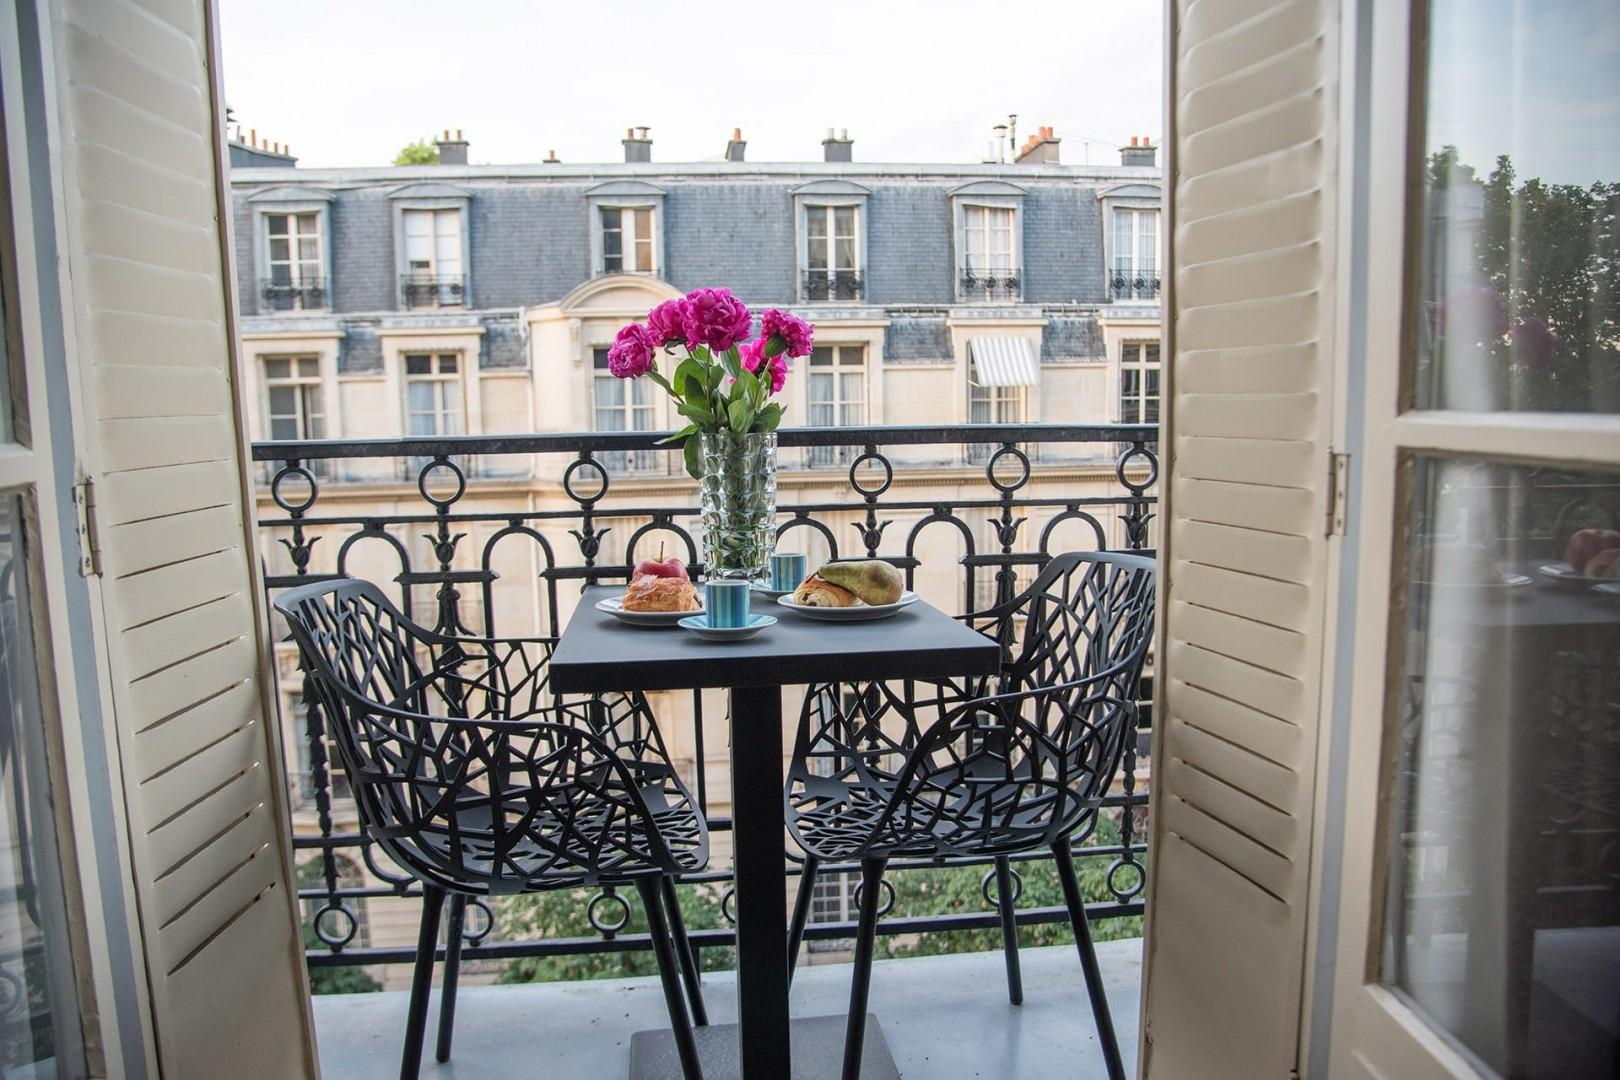 Soak in the Parisian atmosphere on your private balcony.